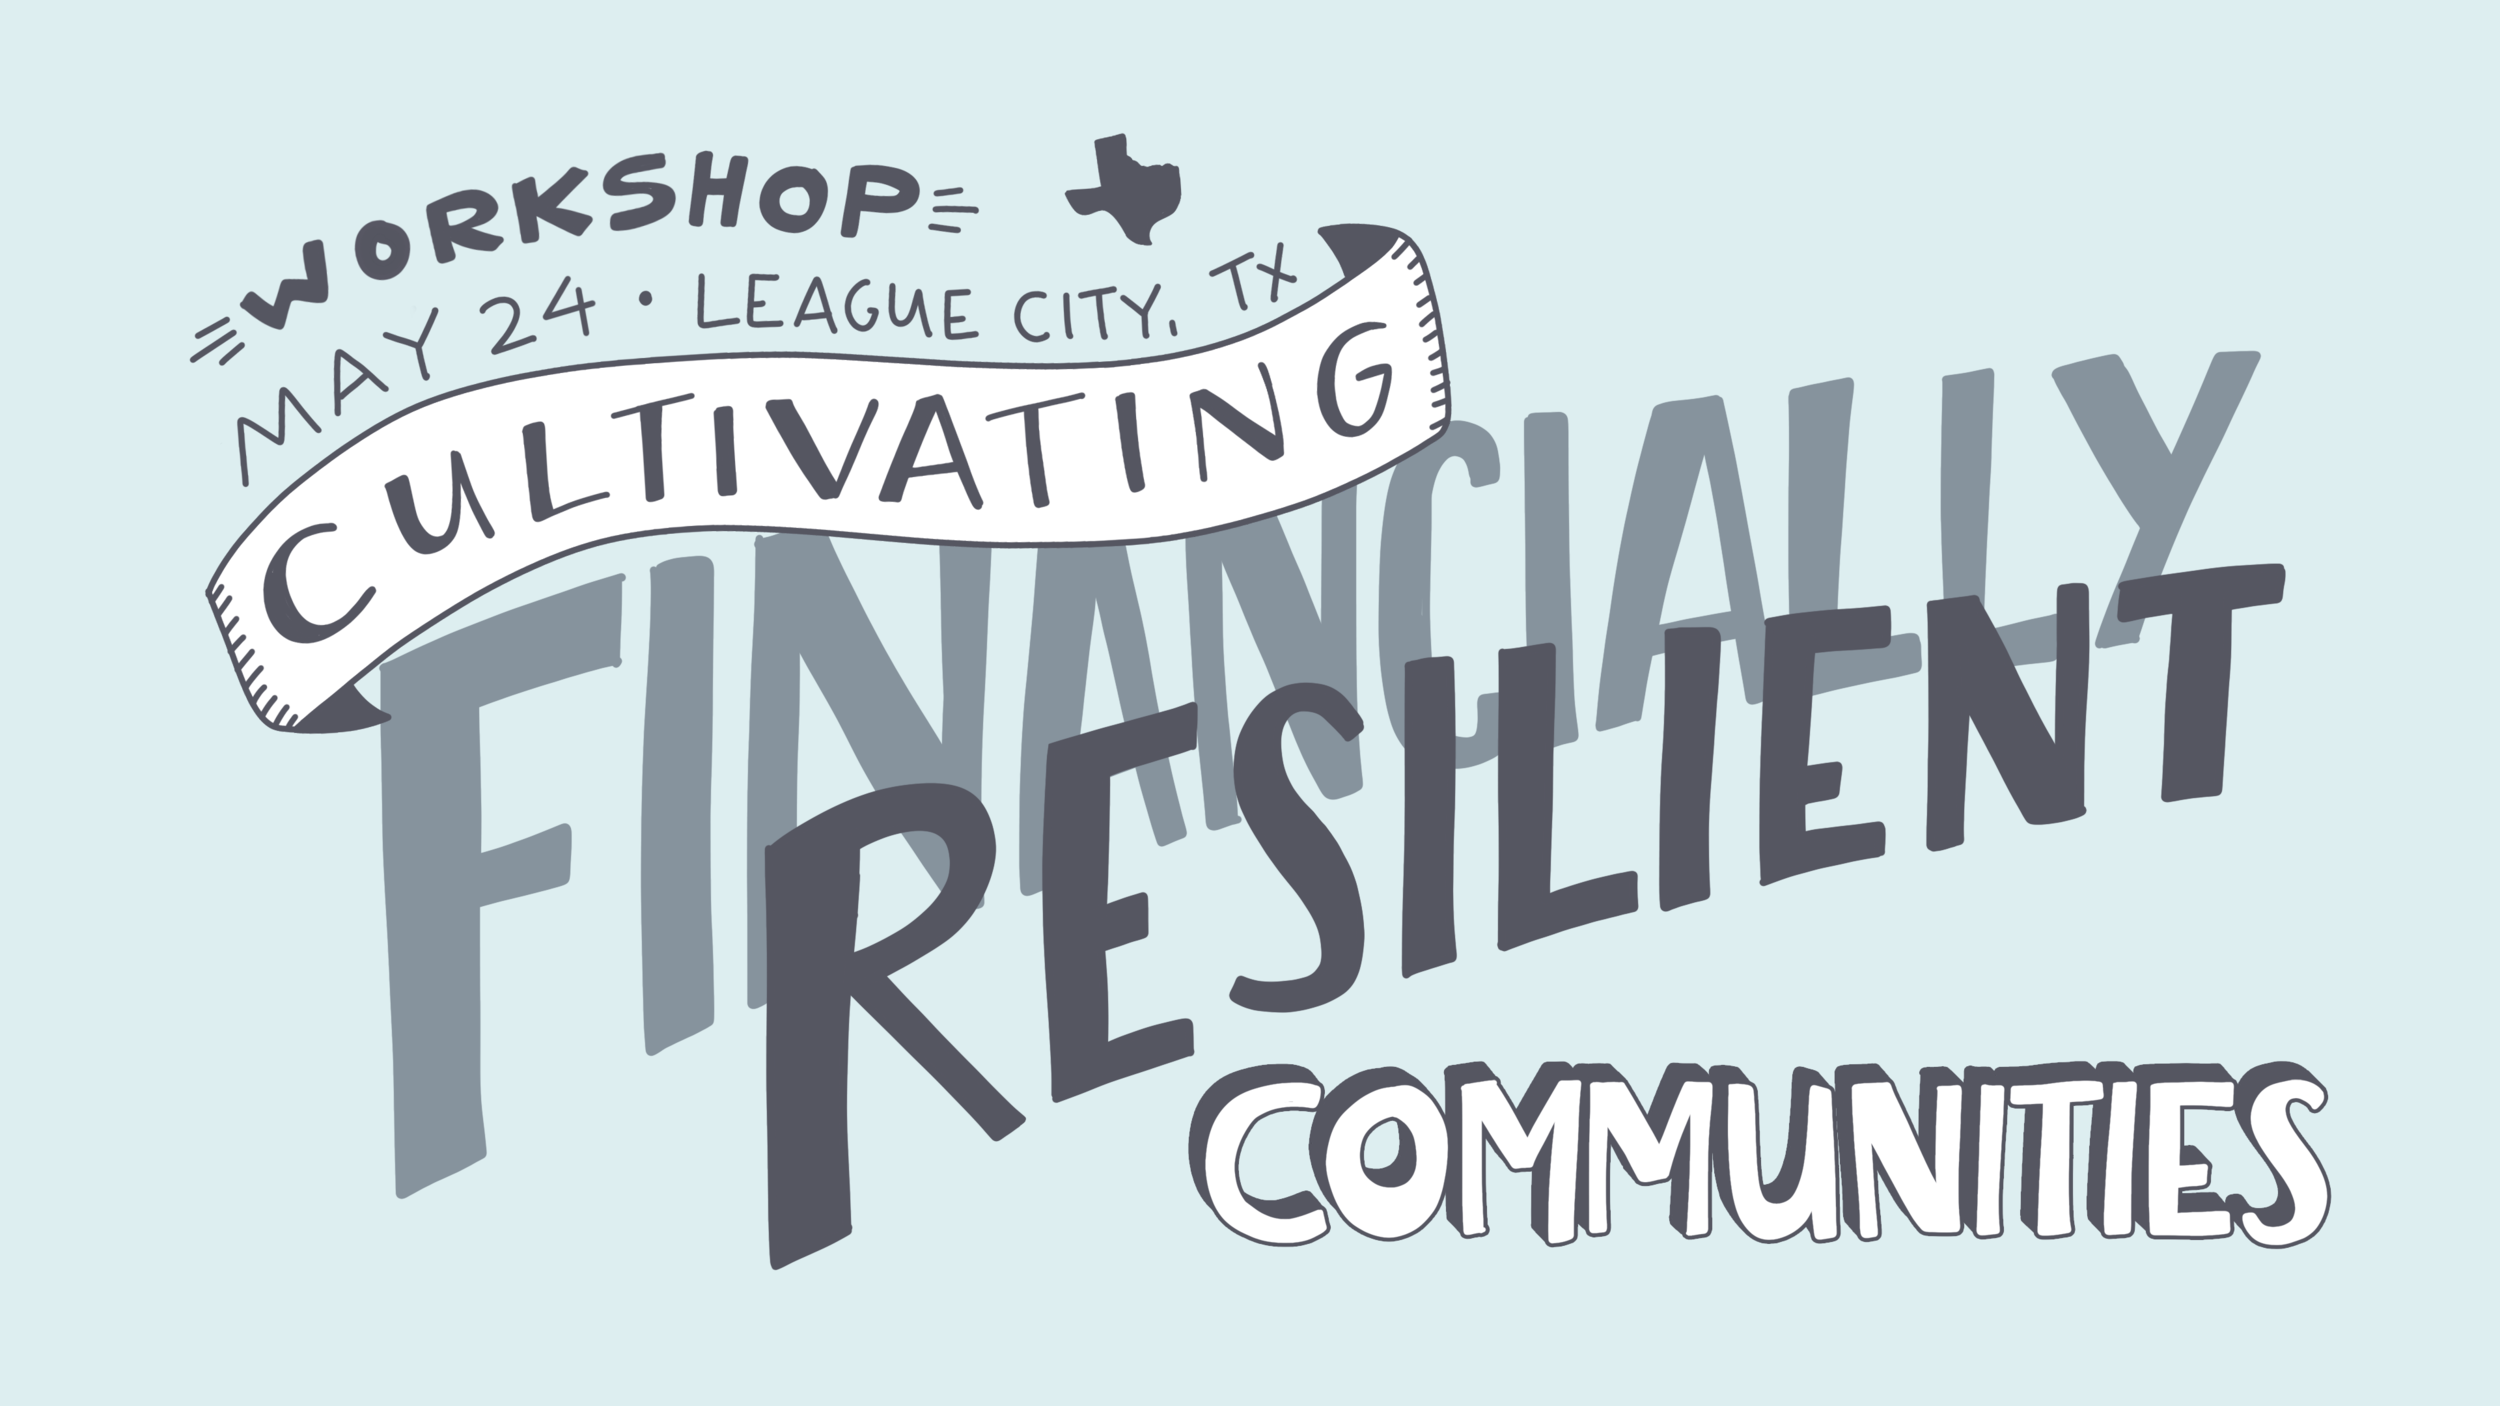 league city workshop image.png